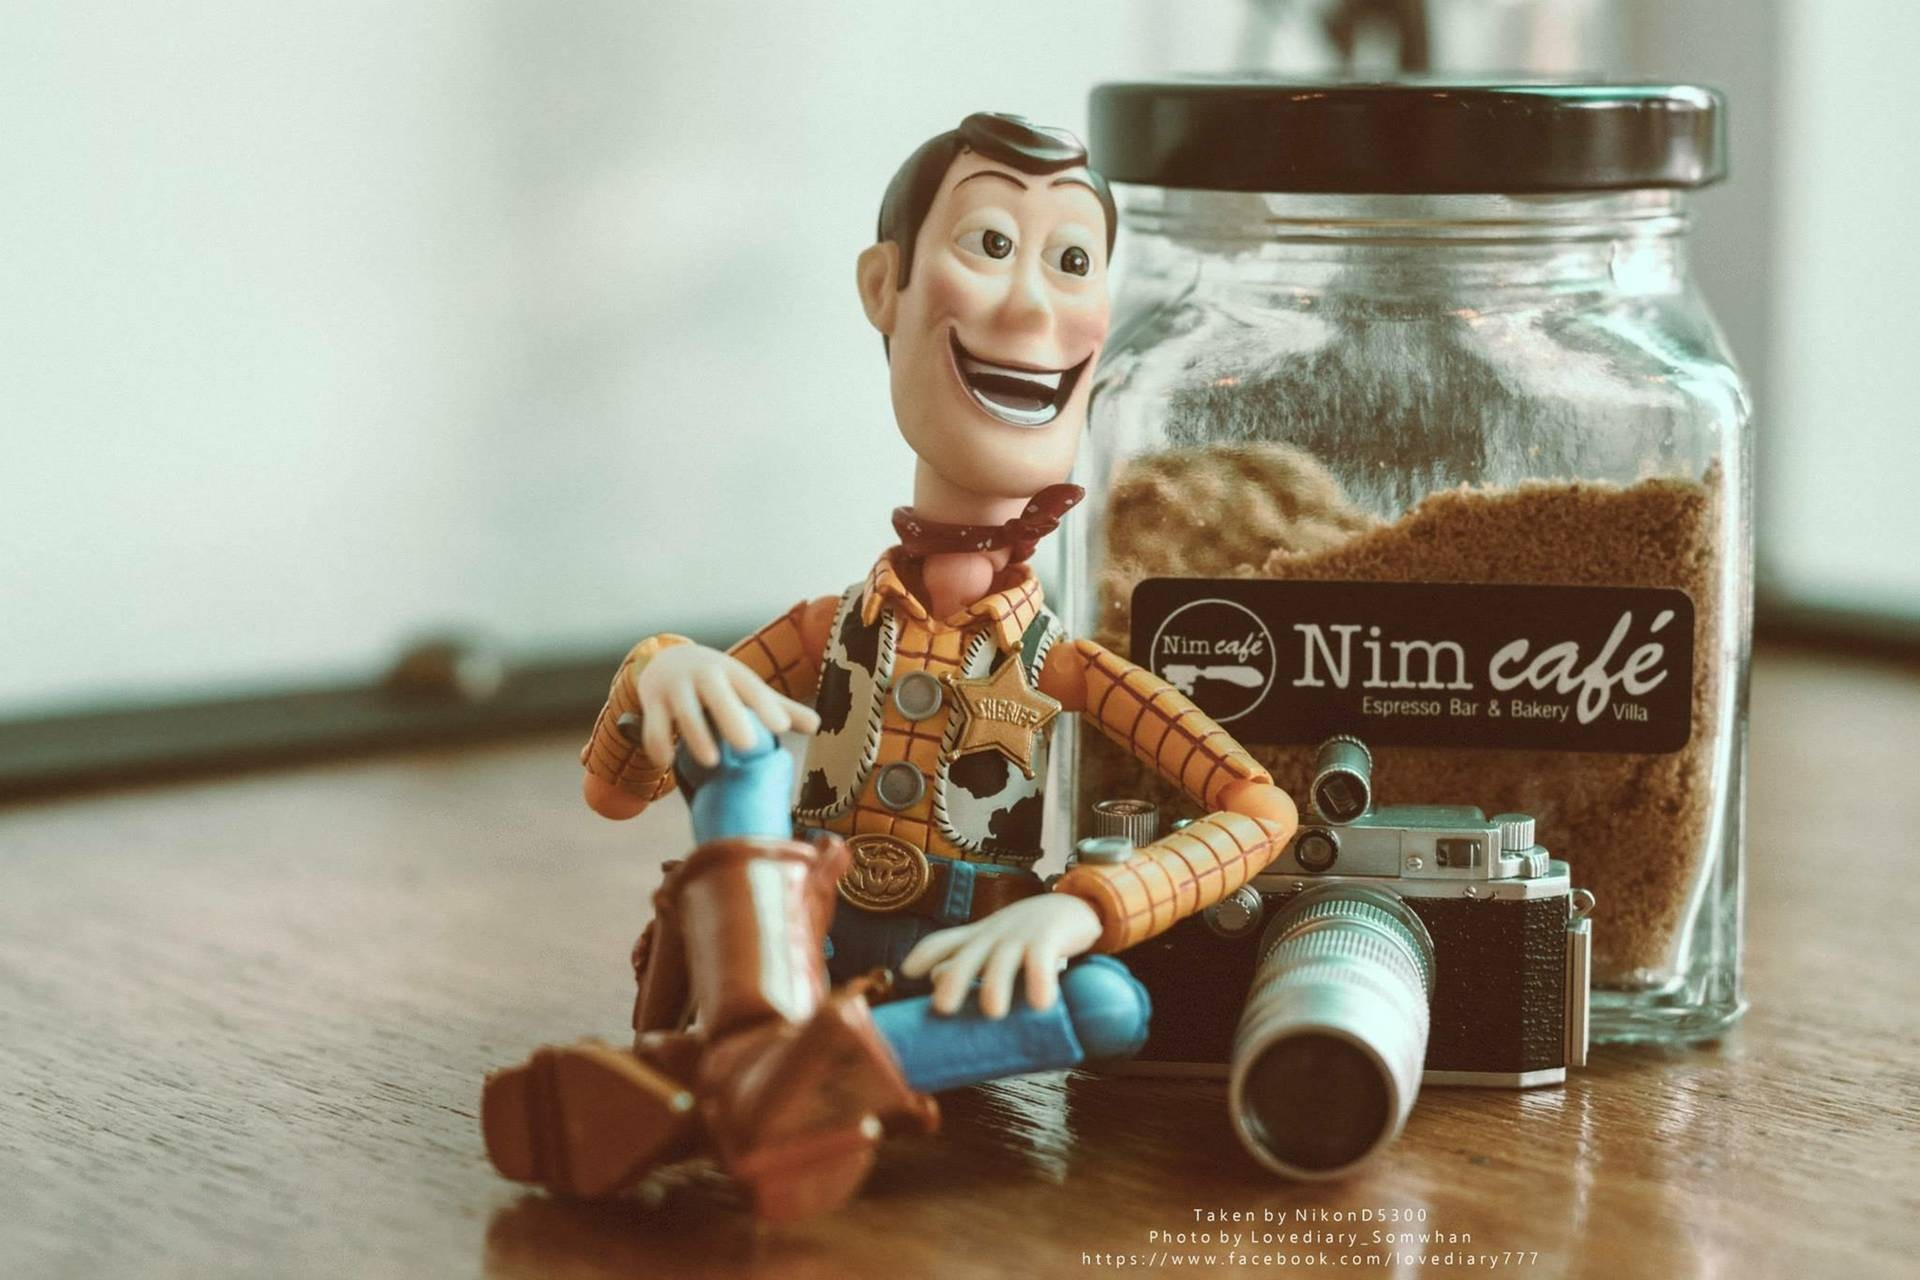 Nim Cafe I Espresso Bar